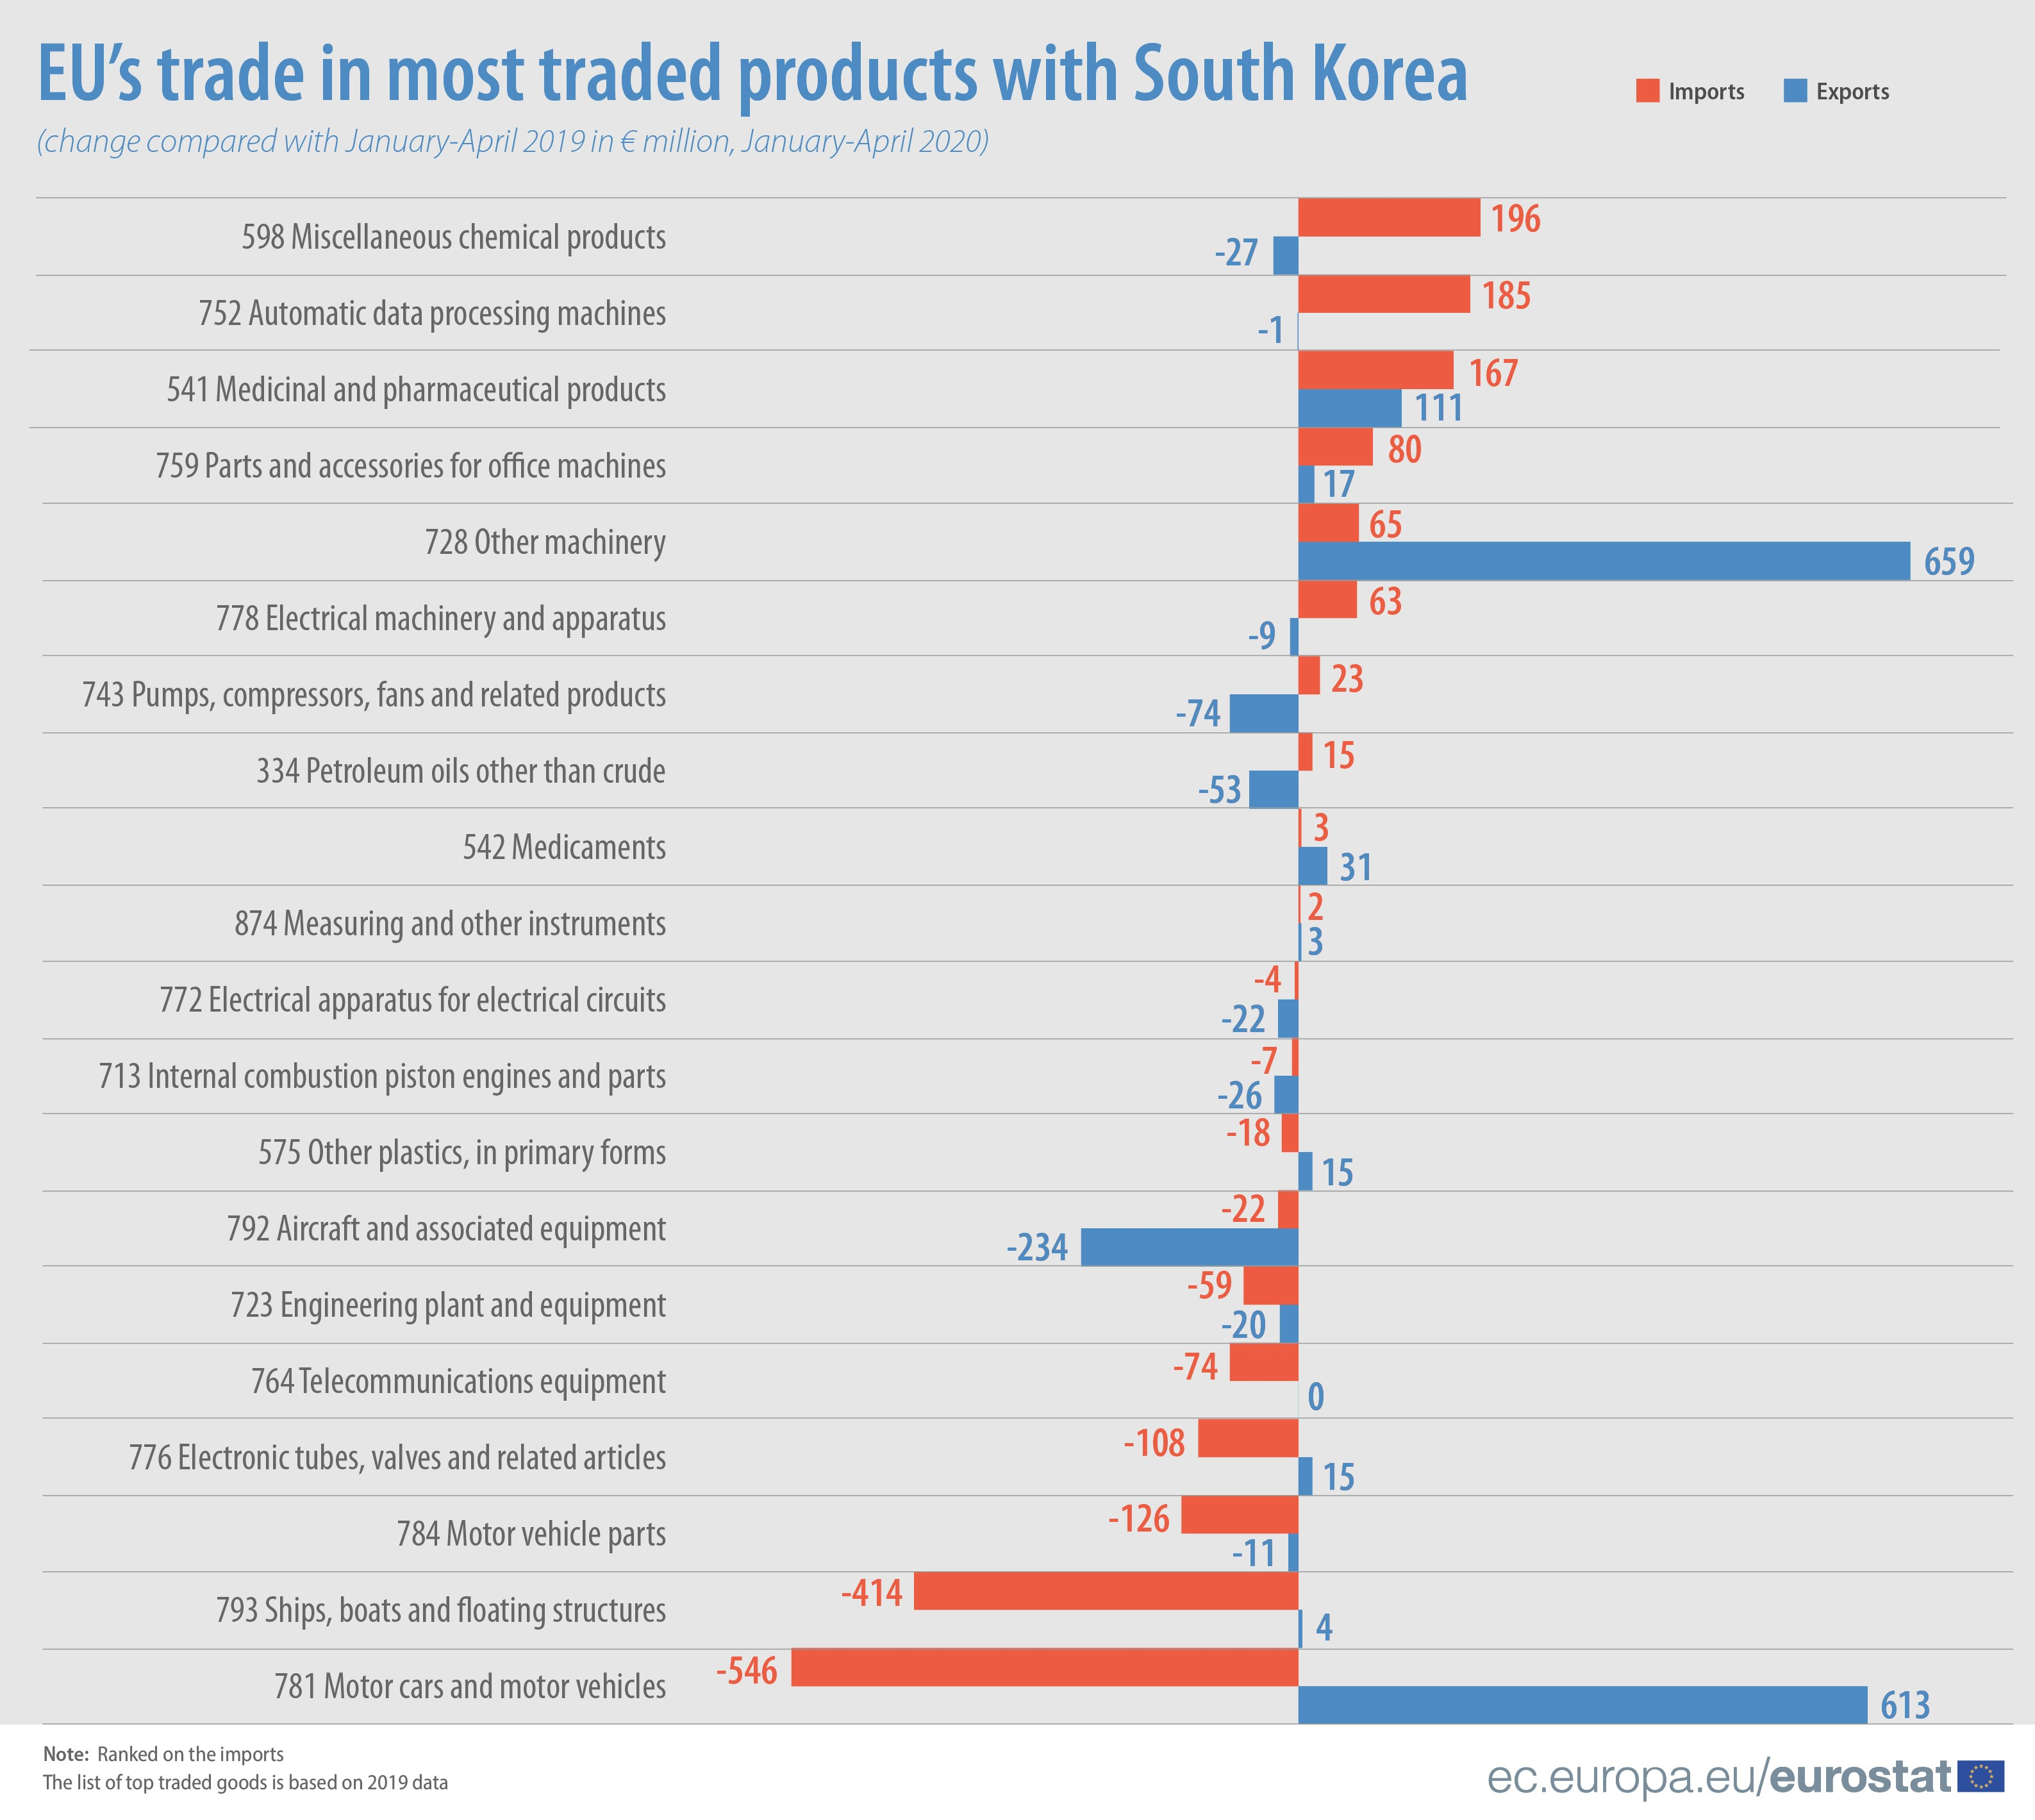 EU trade in most traded products with South Korea, January - April 2020 compared with same period last year